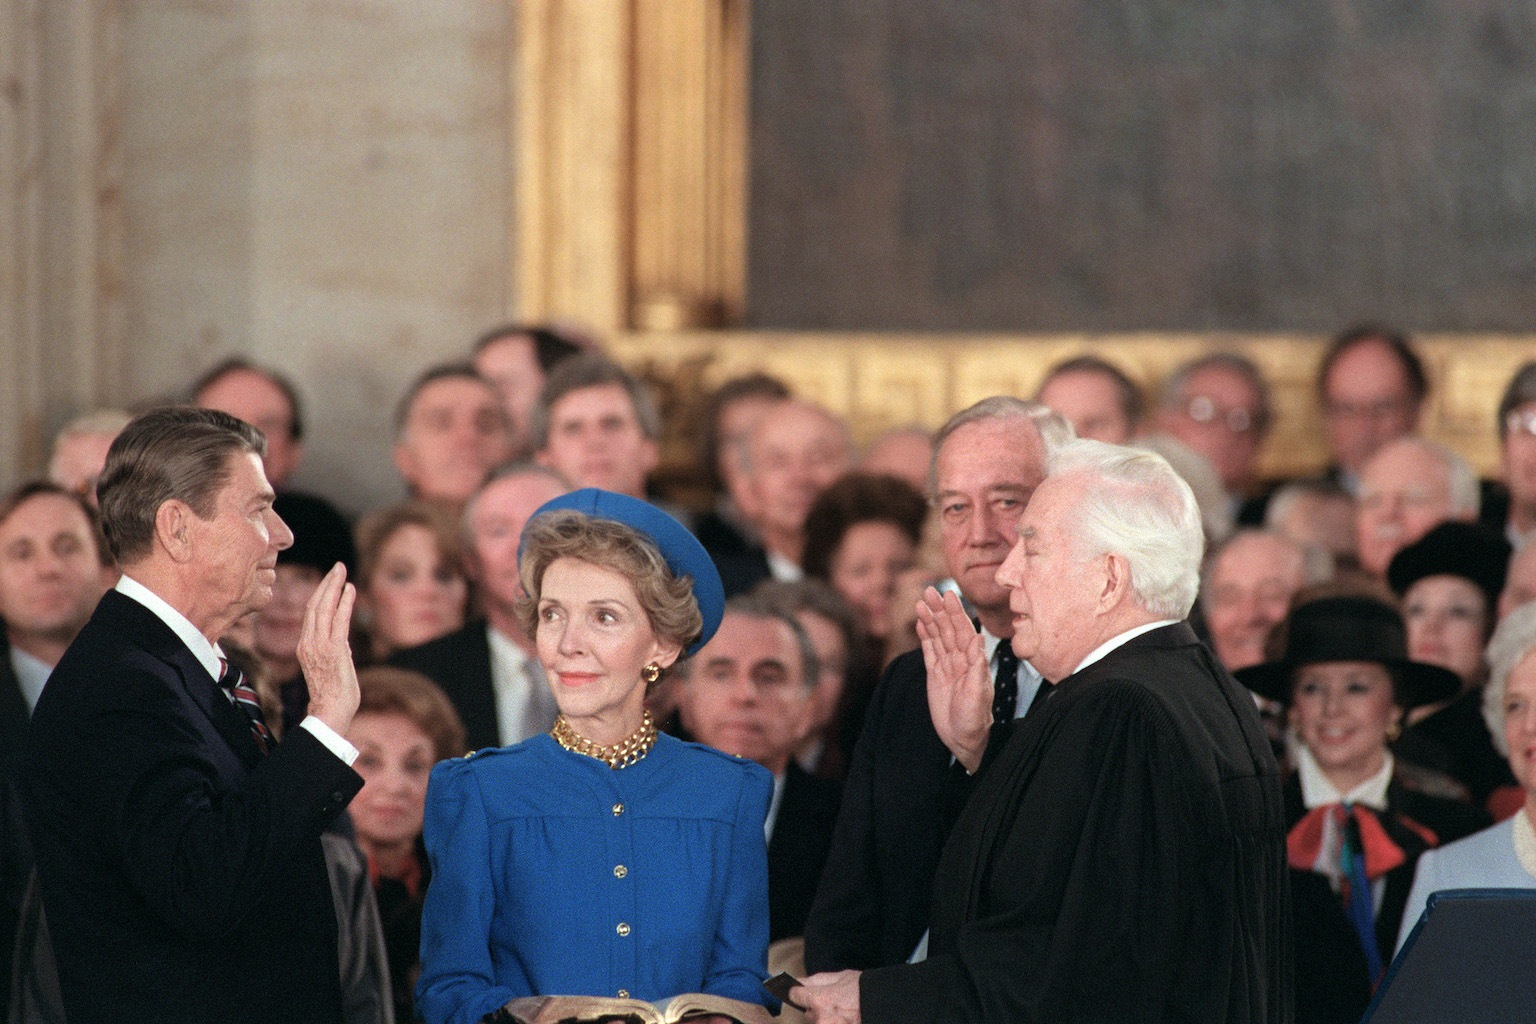 US President Ronald Reagan inauguration